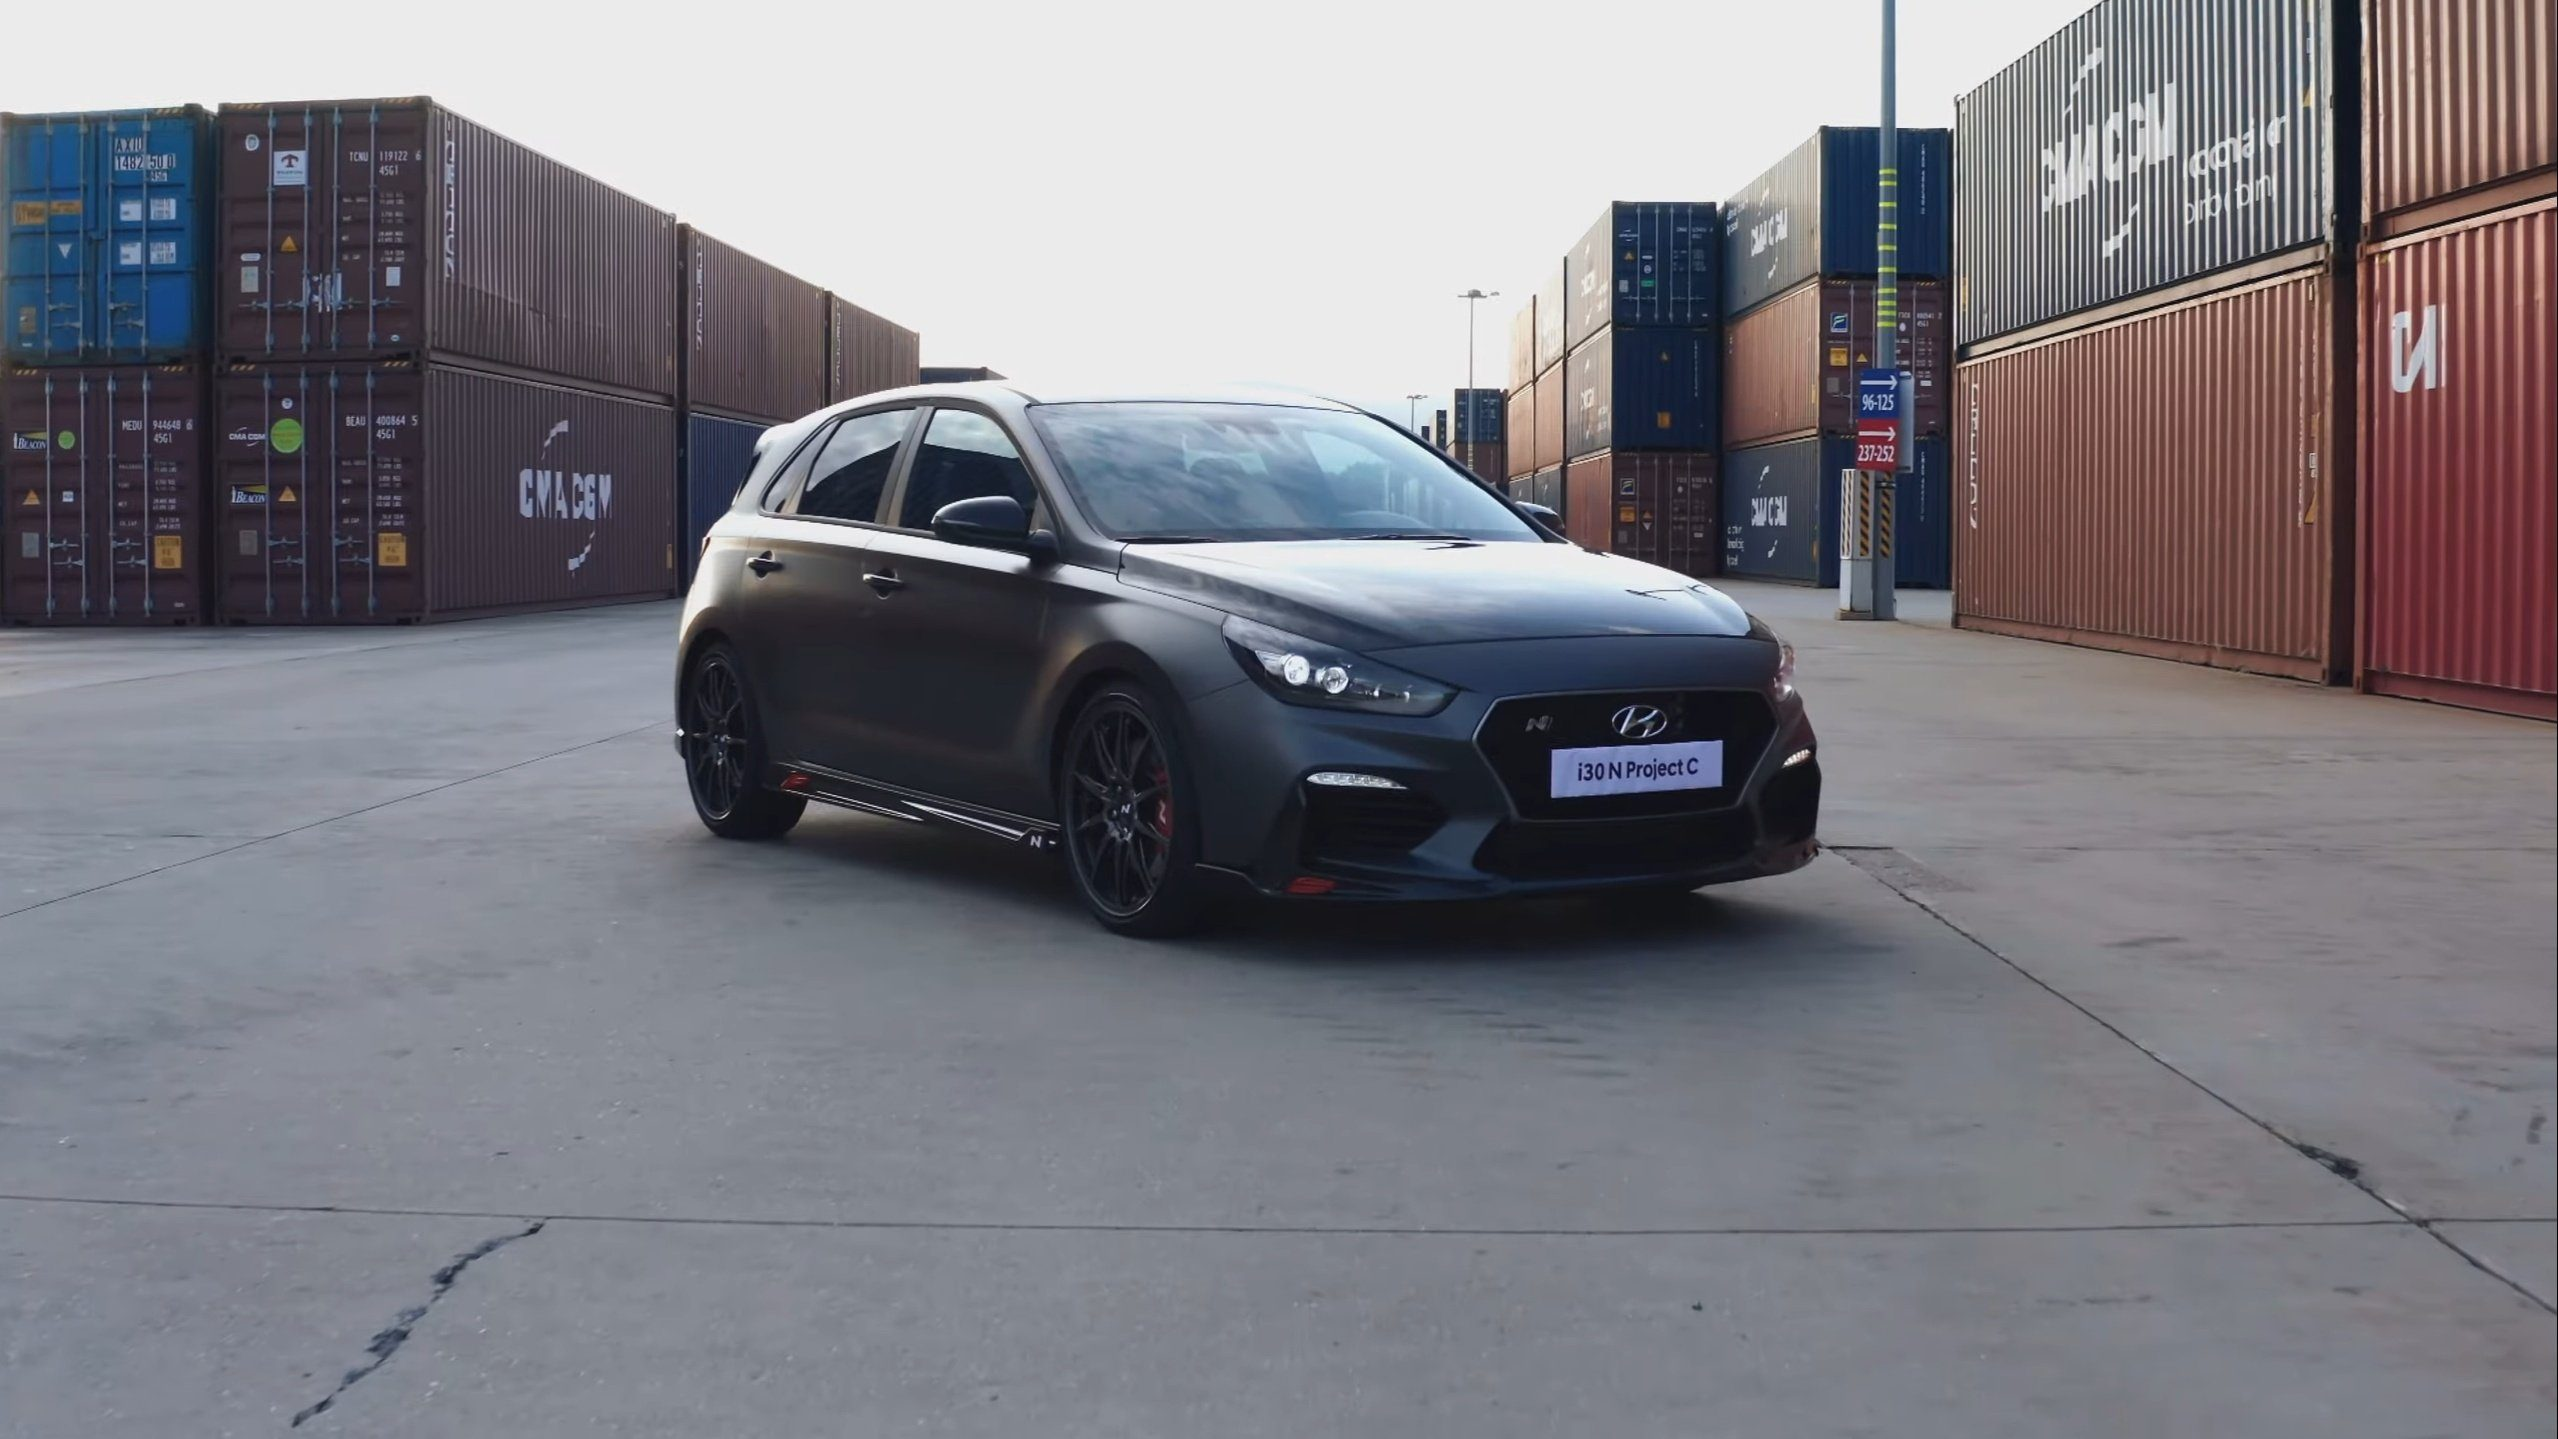 Hyundai I30 N Project C Reveals All Its Carbon Fiber